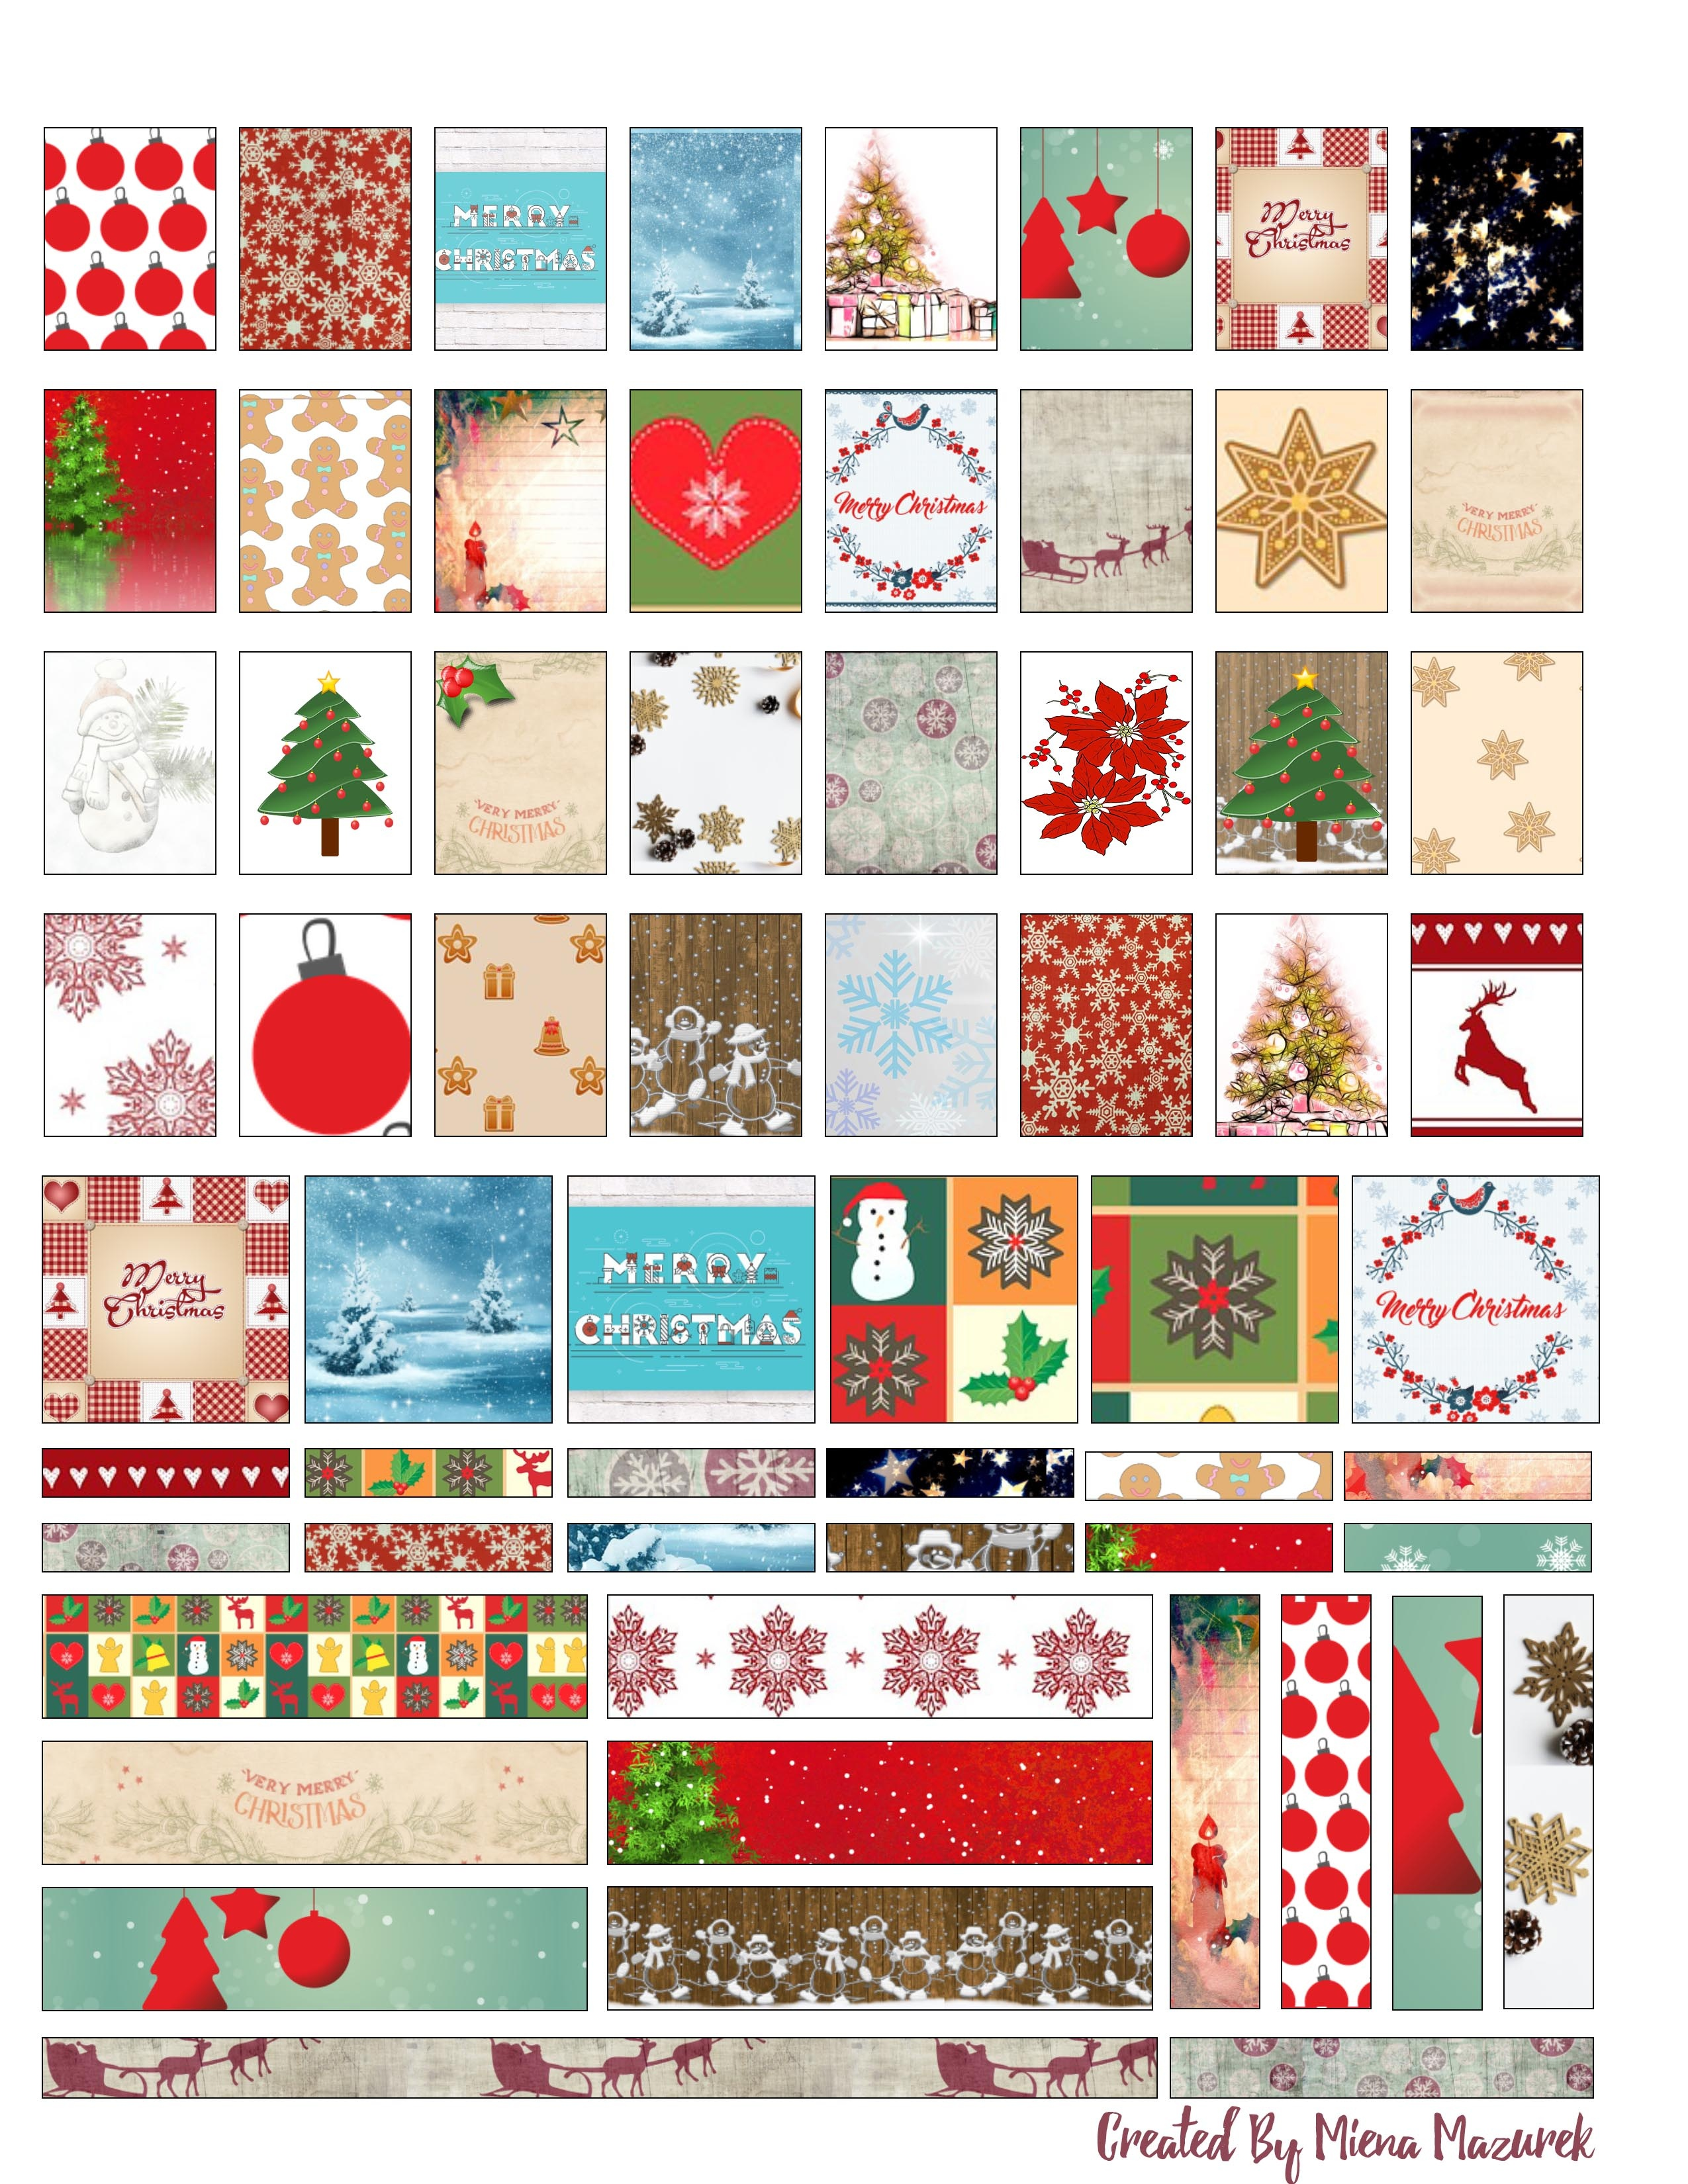 Free Christmas And Winter Mini Panner Stickers Printable - Free Printable Holiday Stickers